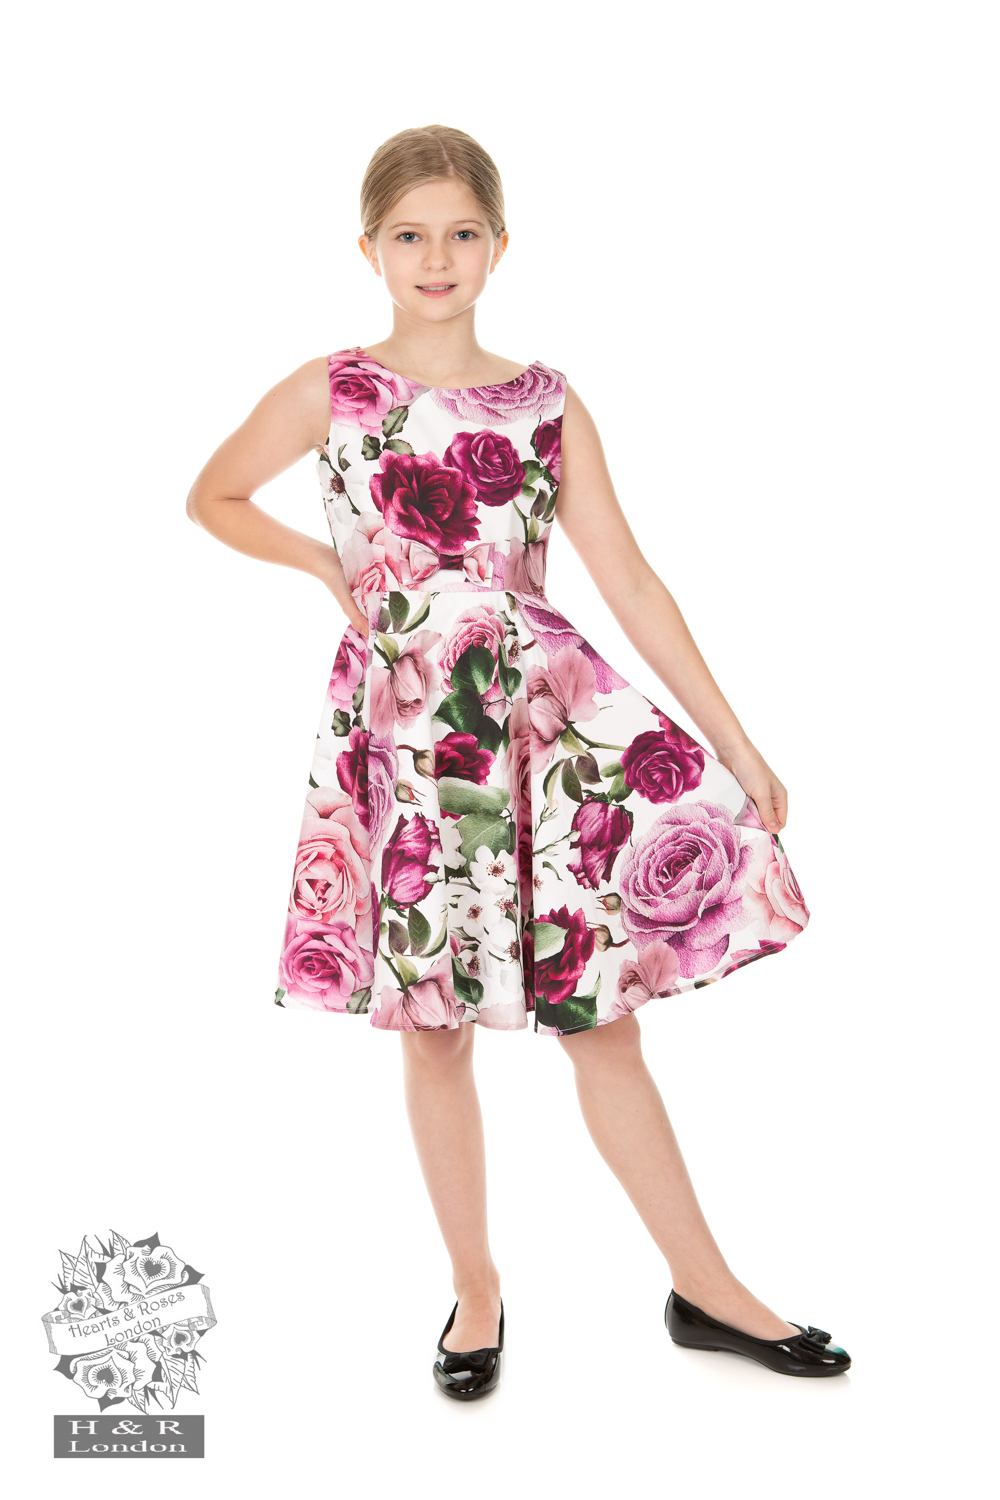 Heart&Roses Barnklänning Alice Floral swingdress stl 3-12år